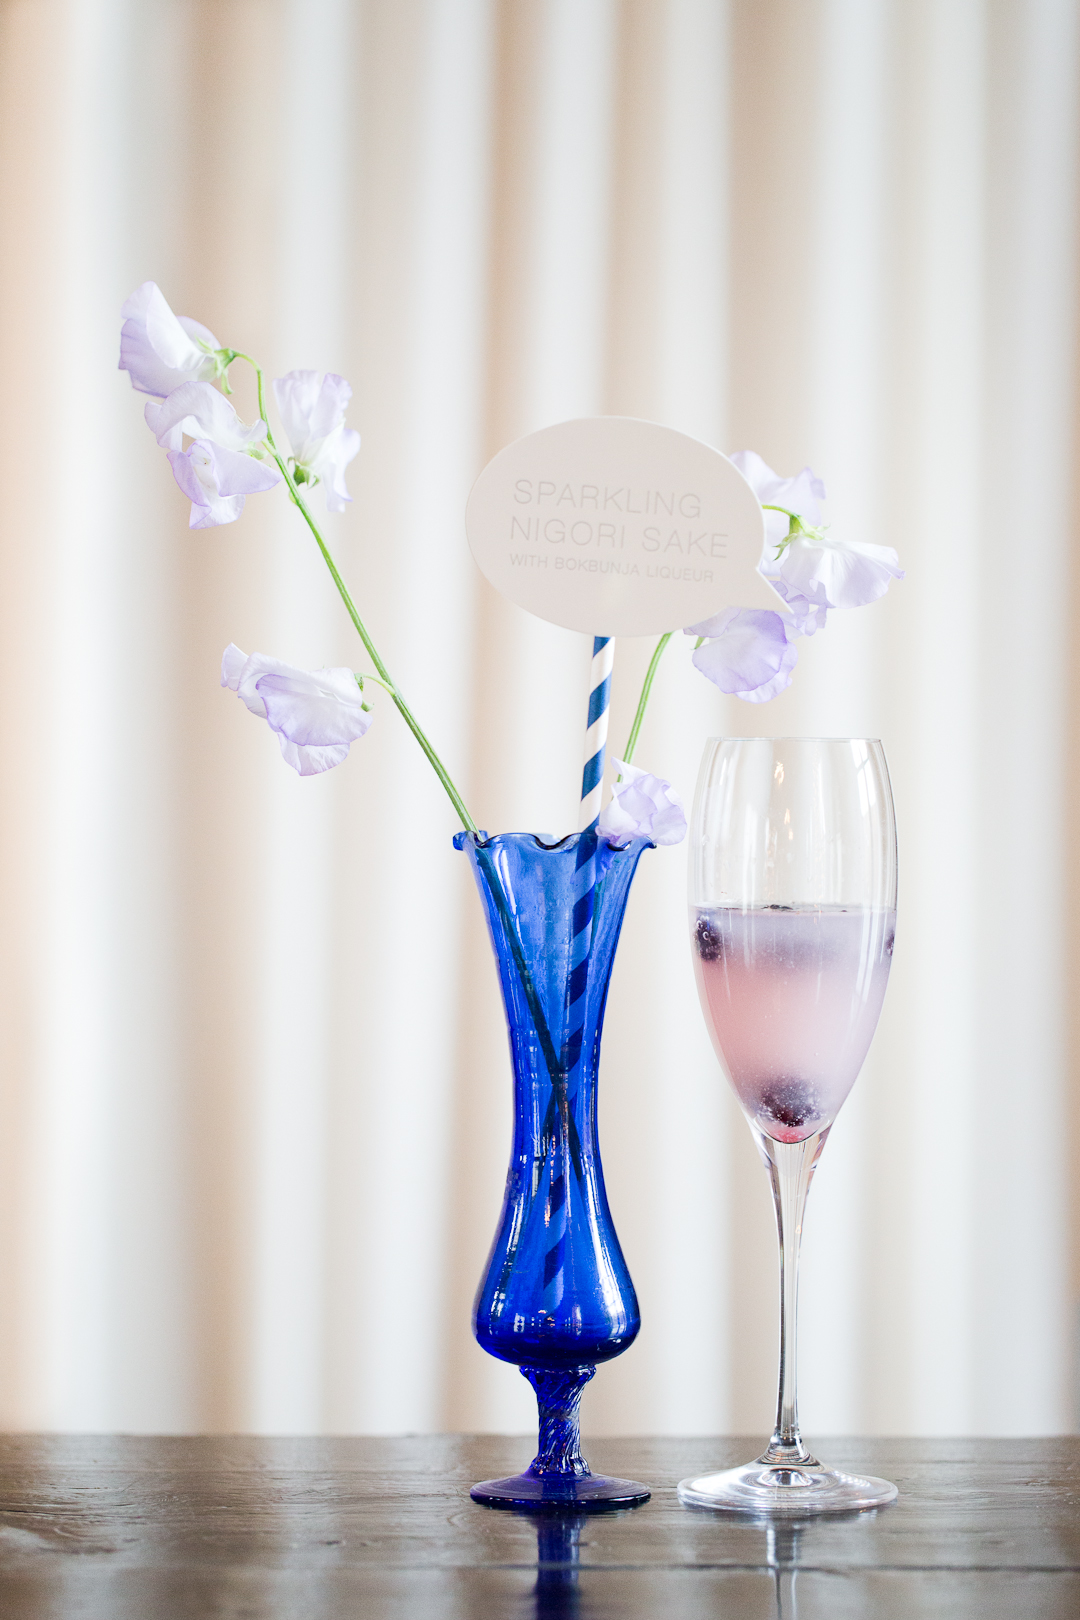 melissa kruse photography - bubbly bride styled shoot (the green building brooklyn) final web-466.jpg